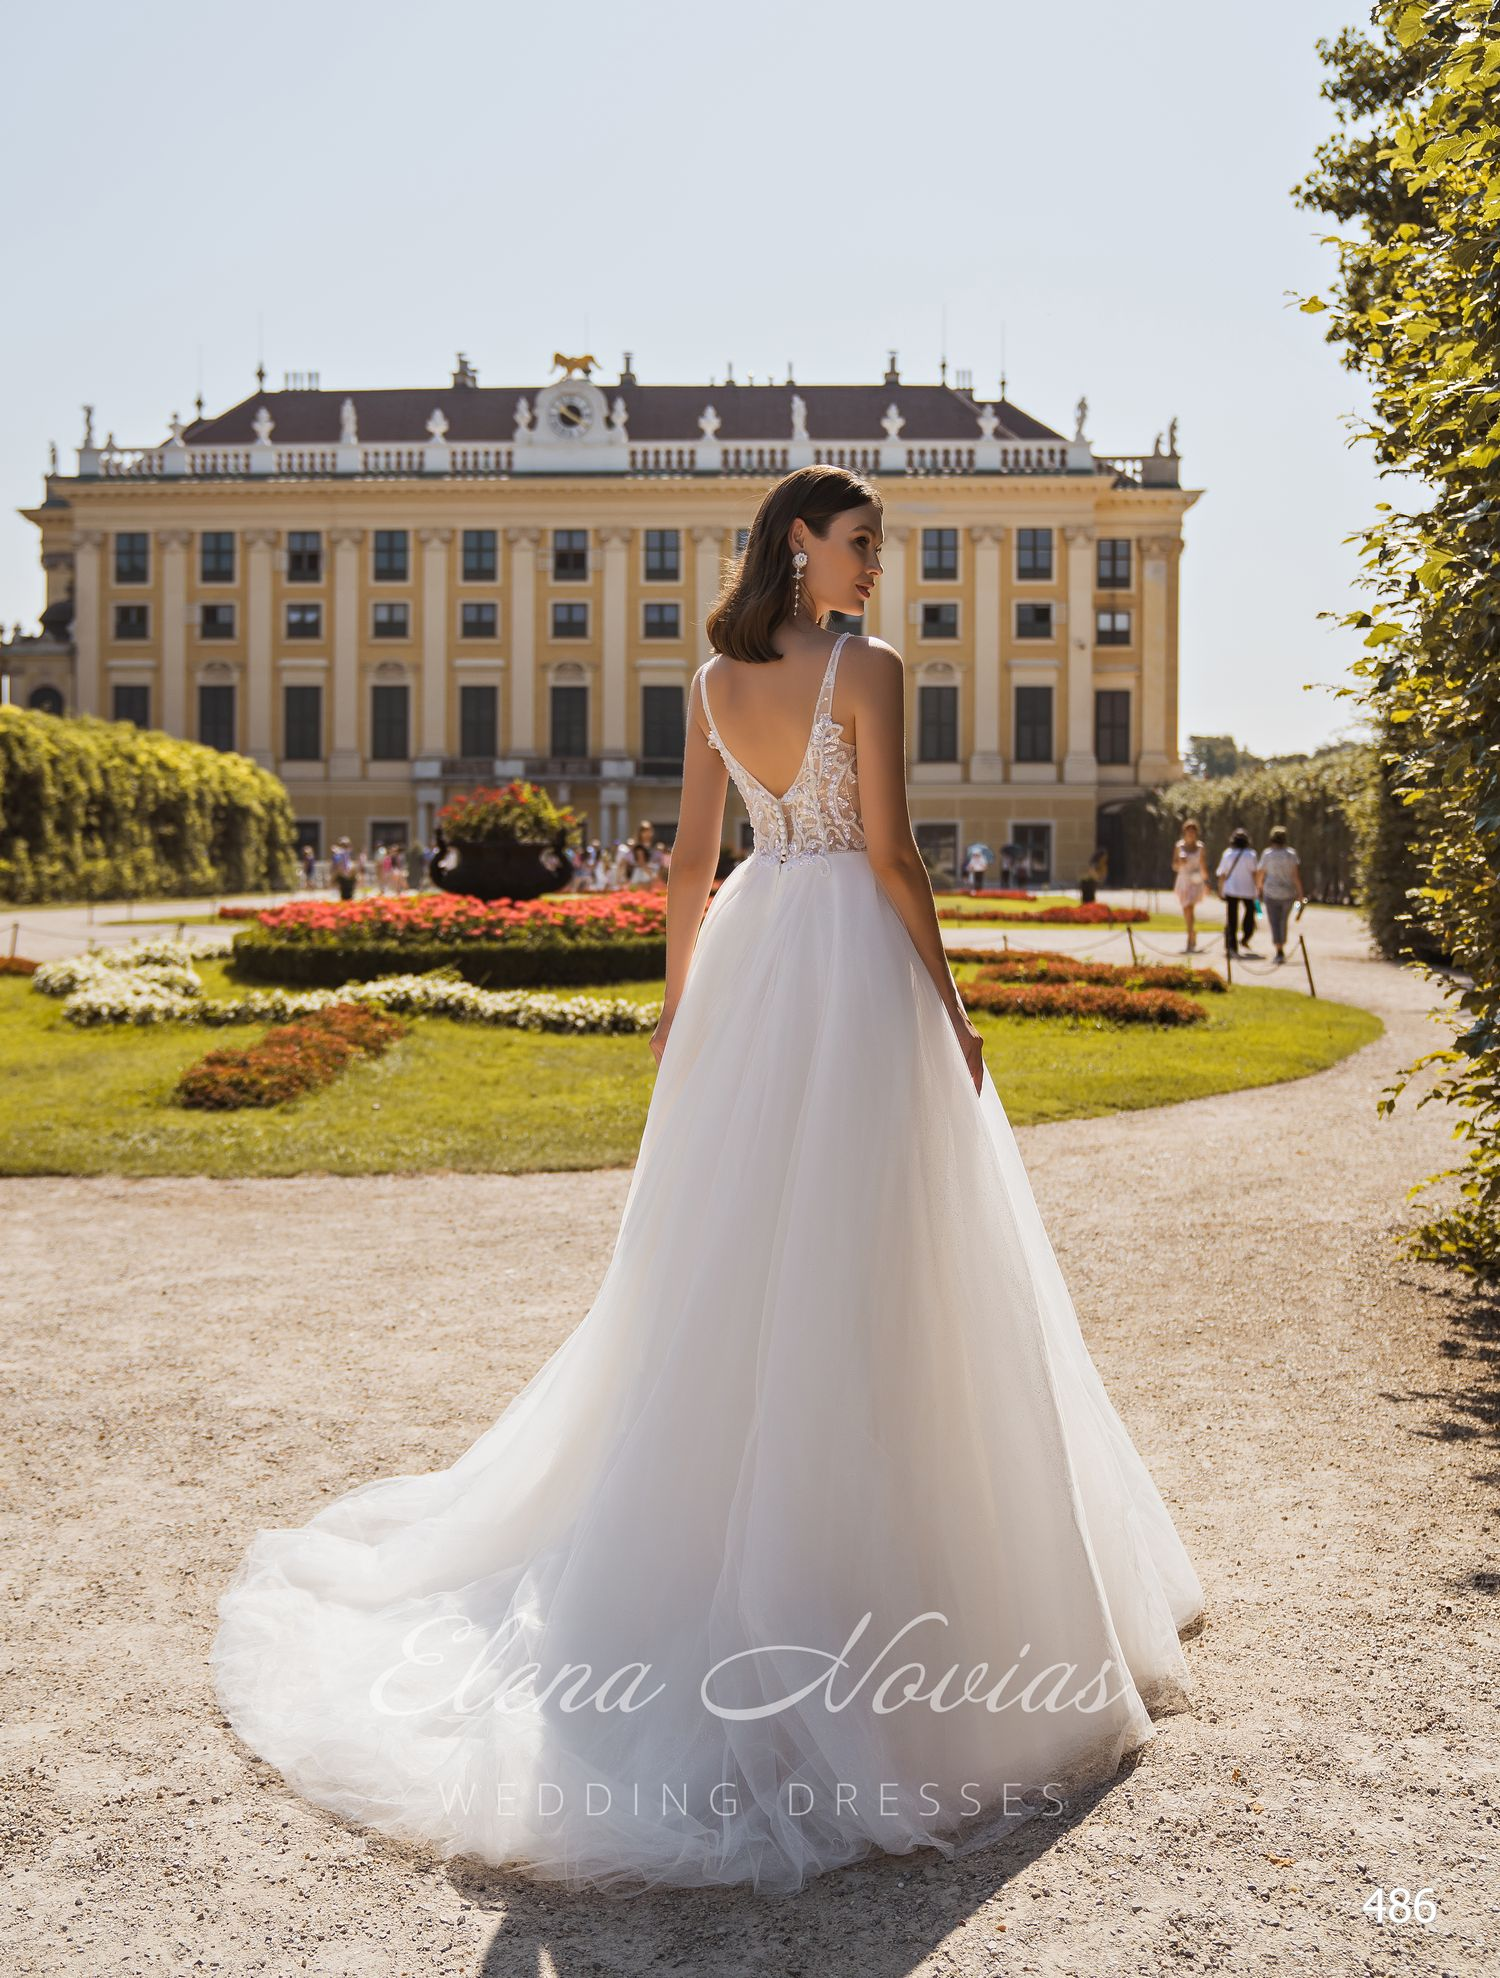 Wedding dresses 486 2